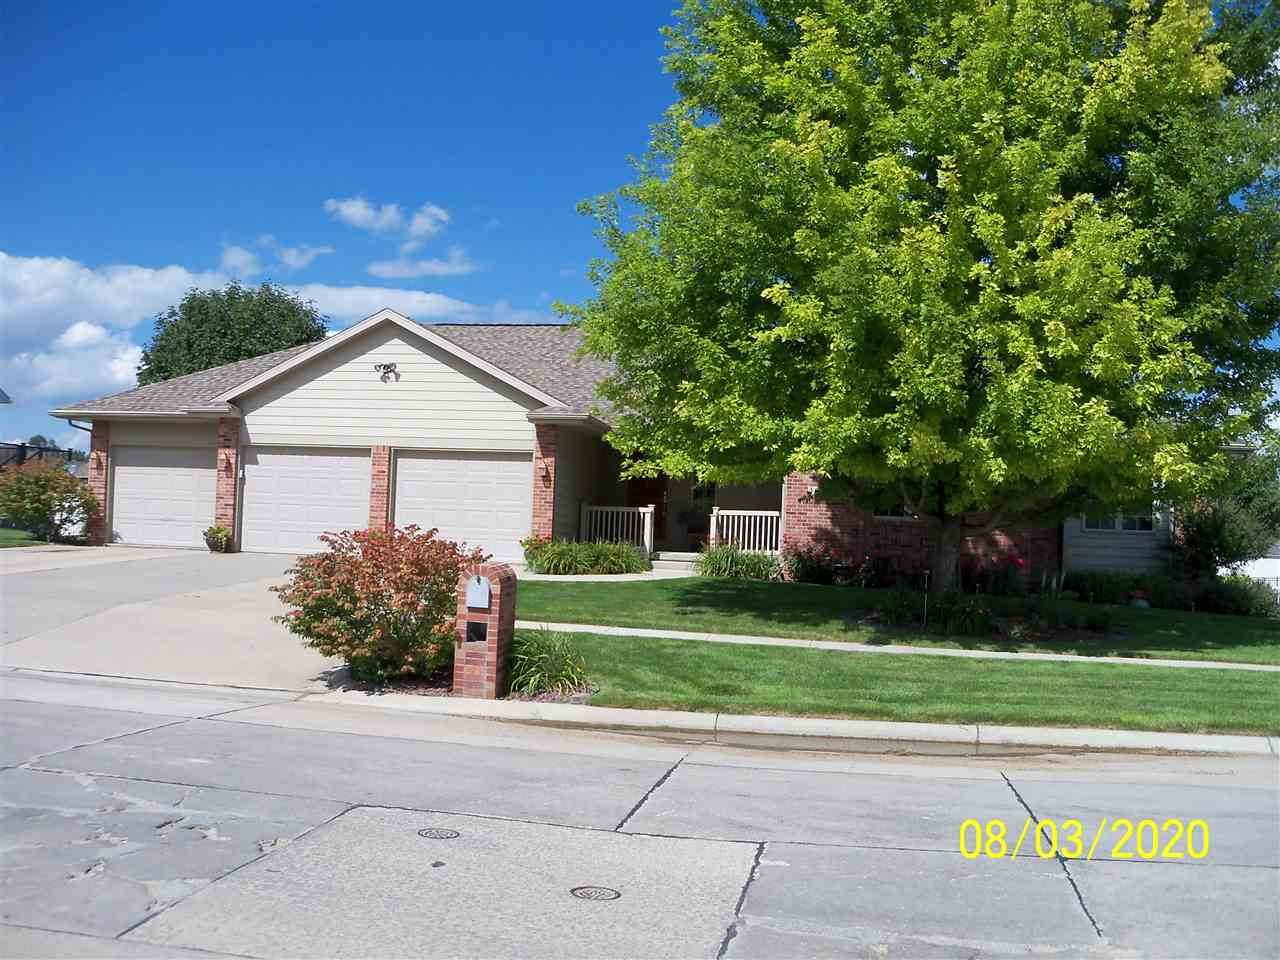 3014 Golf View Dr - Photo 1